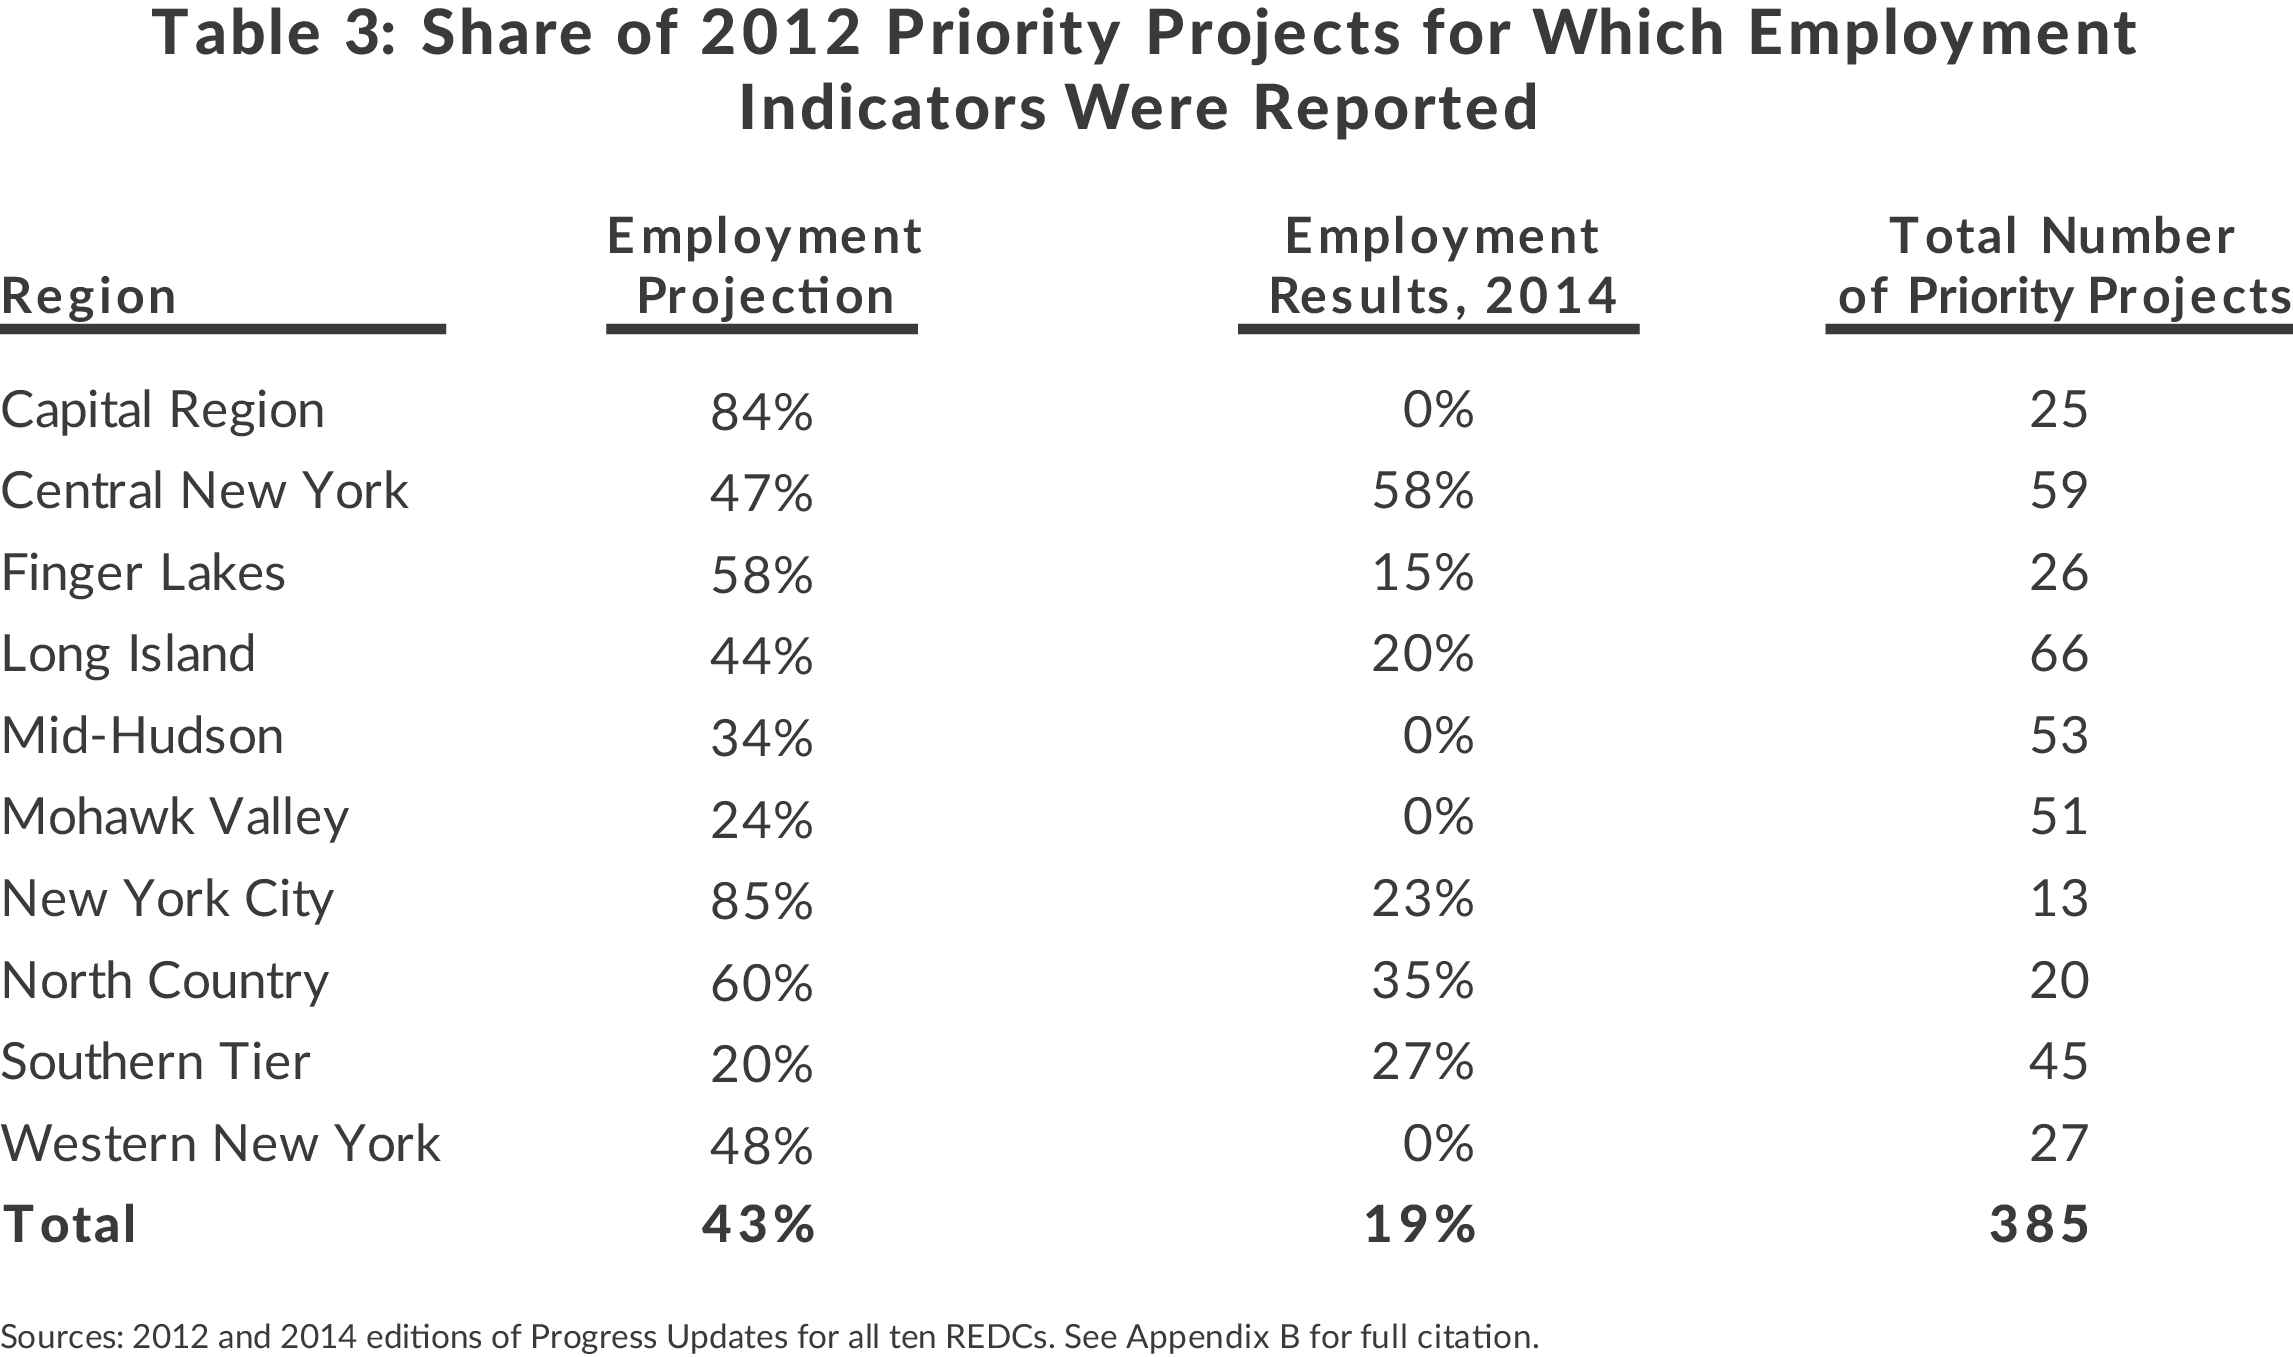 Table showing share of 2012 priority projects with employment indicators report by Regional Economic Development Council